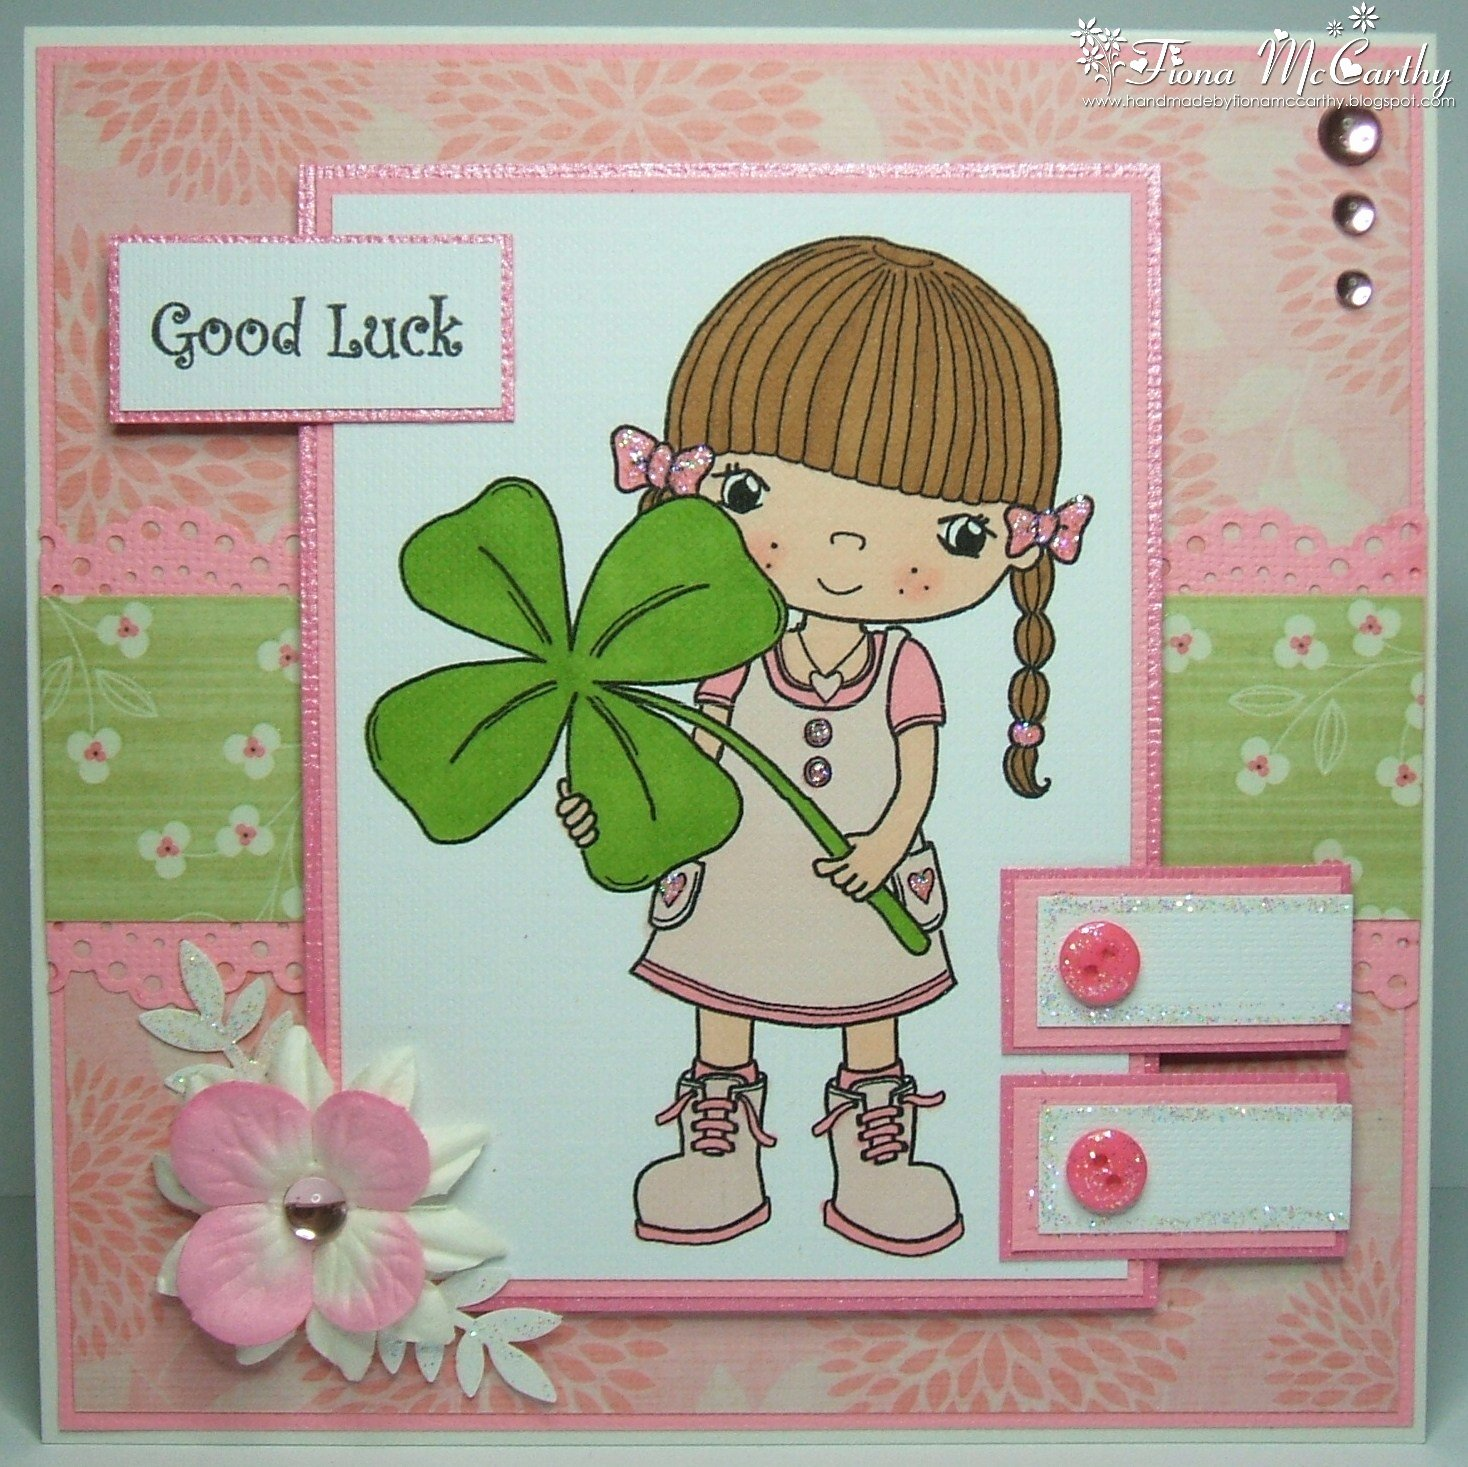 Good Luck Card Template Beautiful Good Luck Cards to Print Portablegasgrillweber